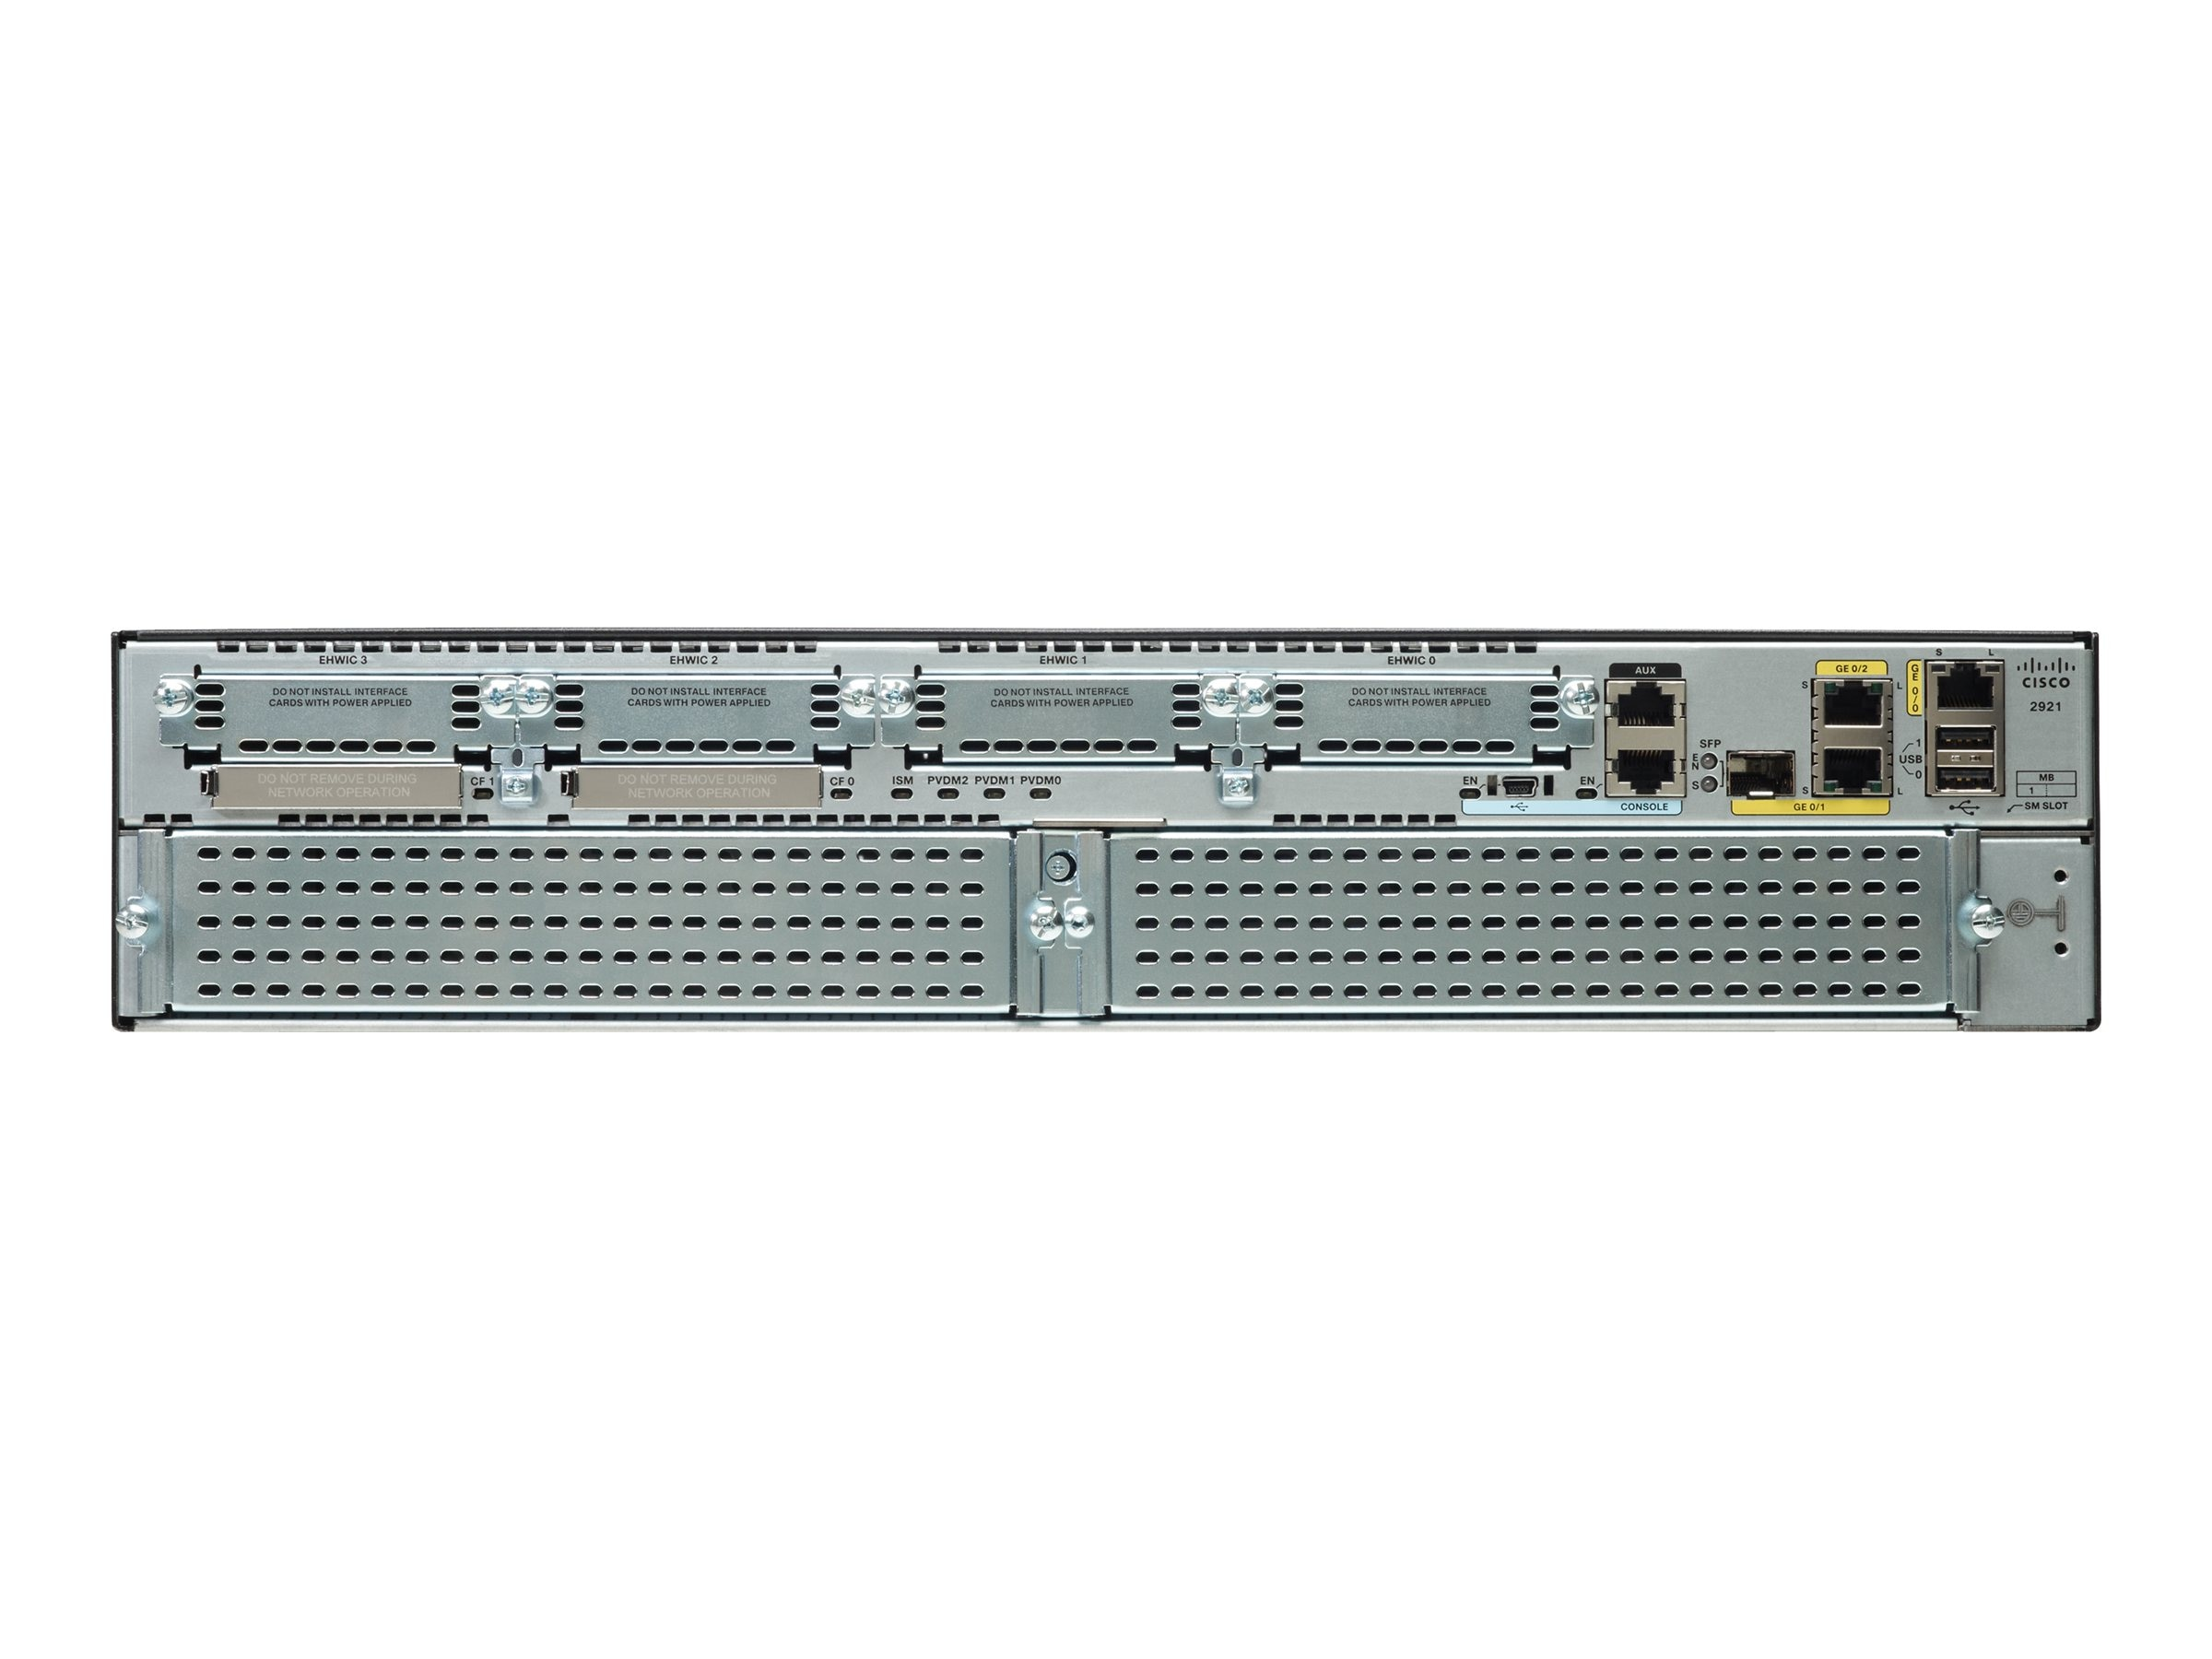 Cisco CISCO2921/K9 Image 3